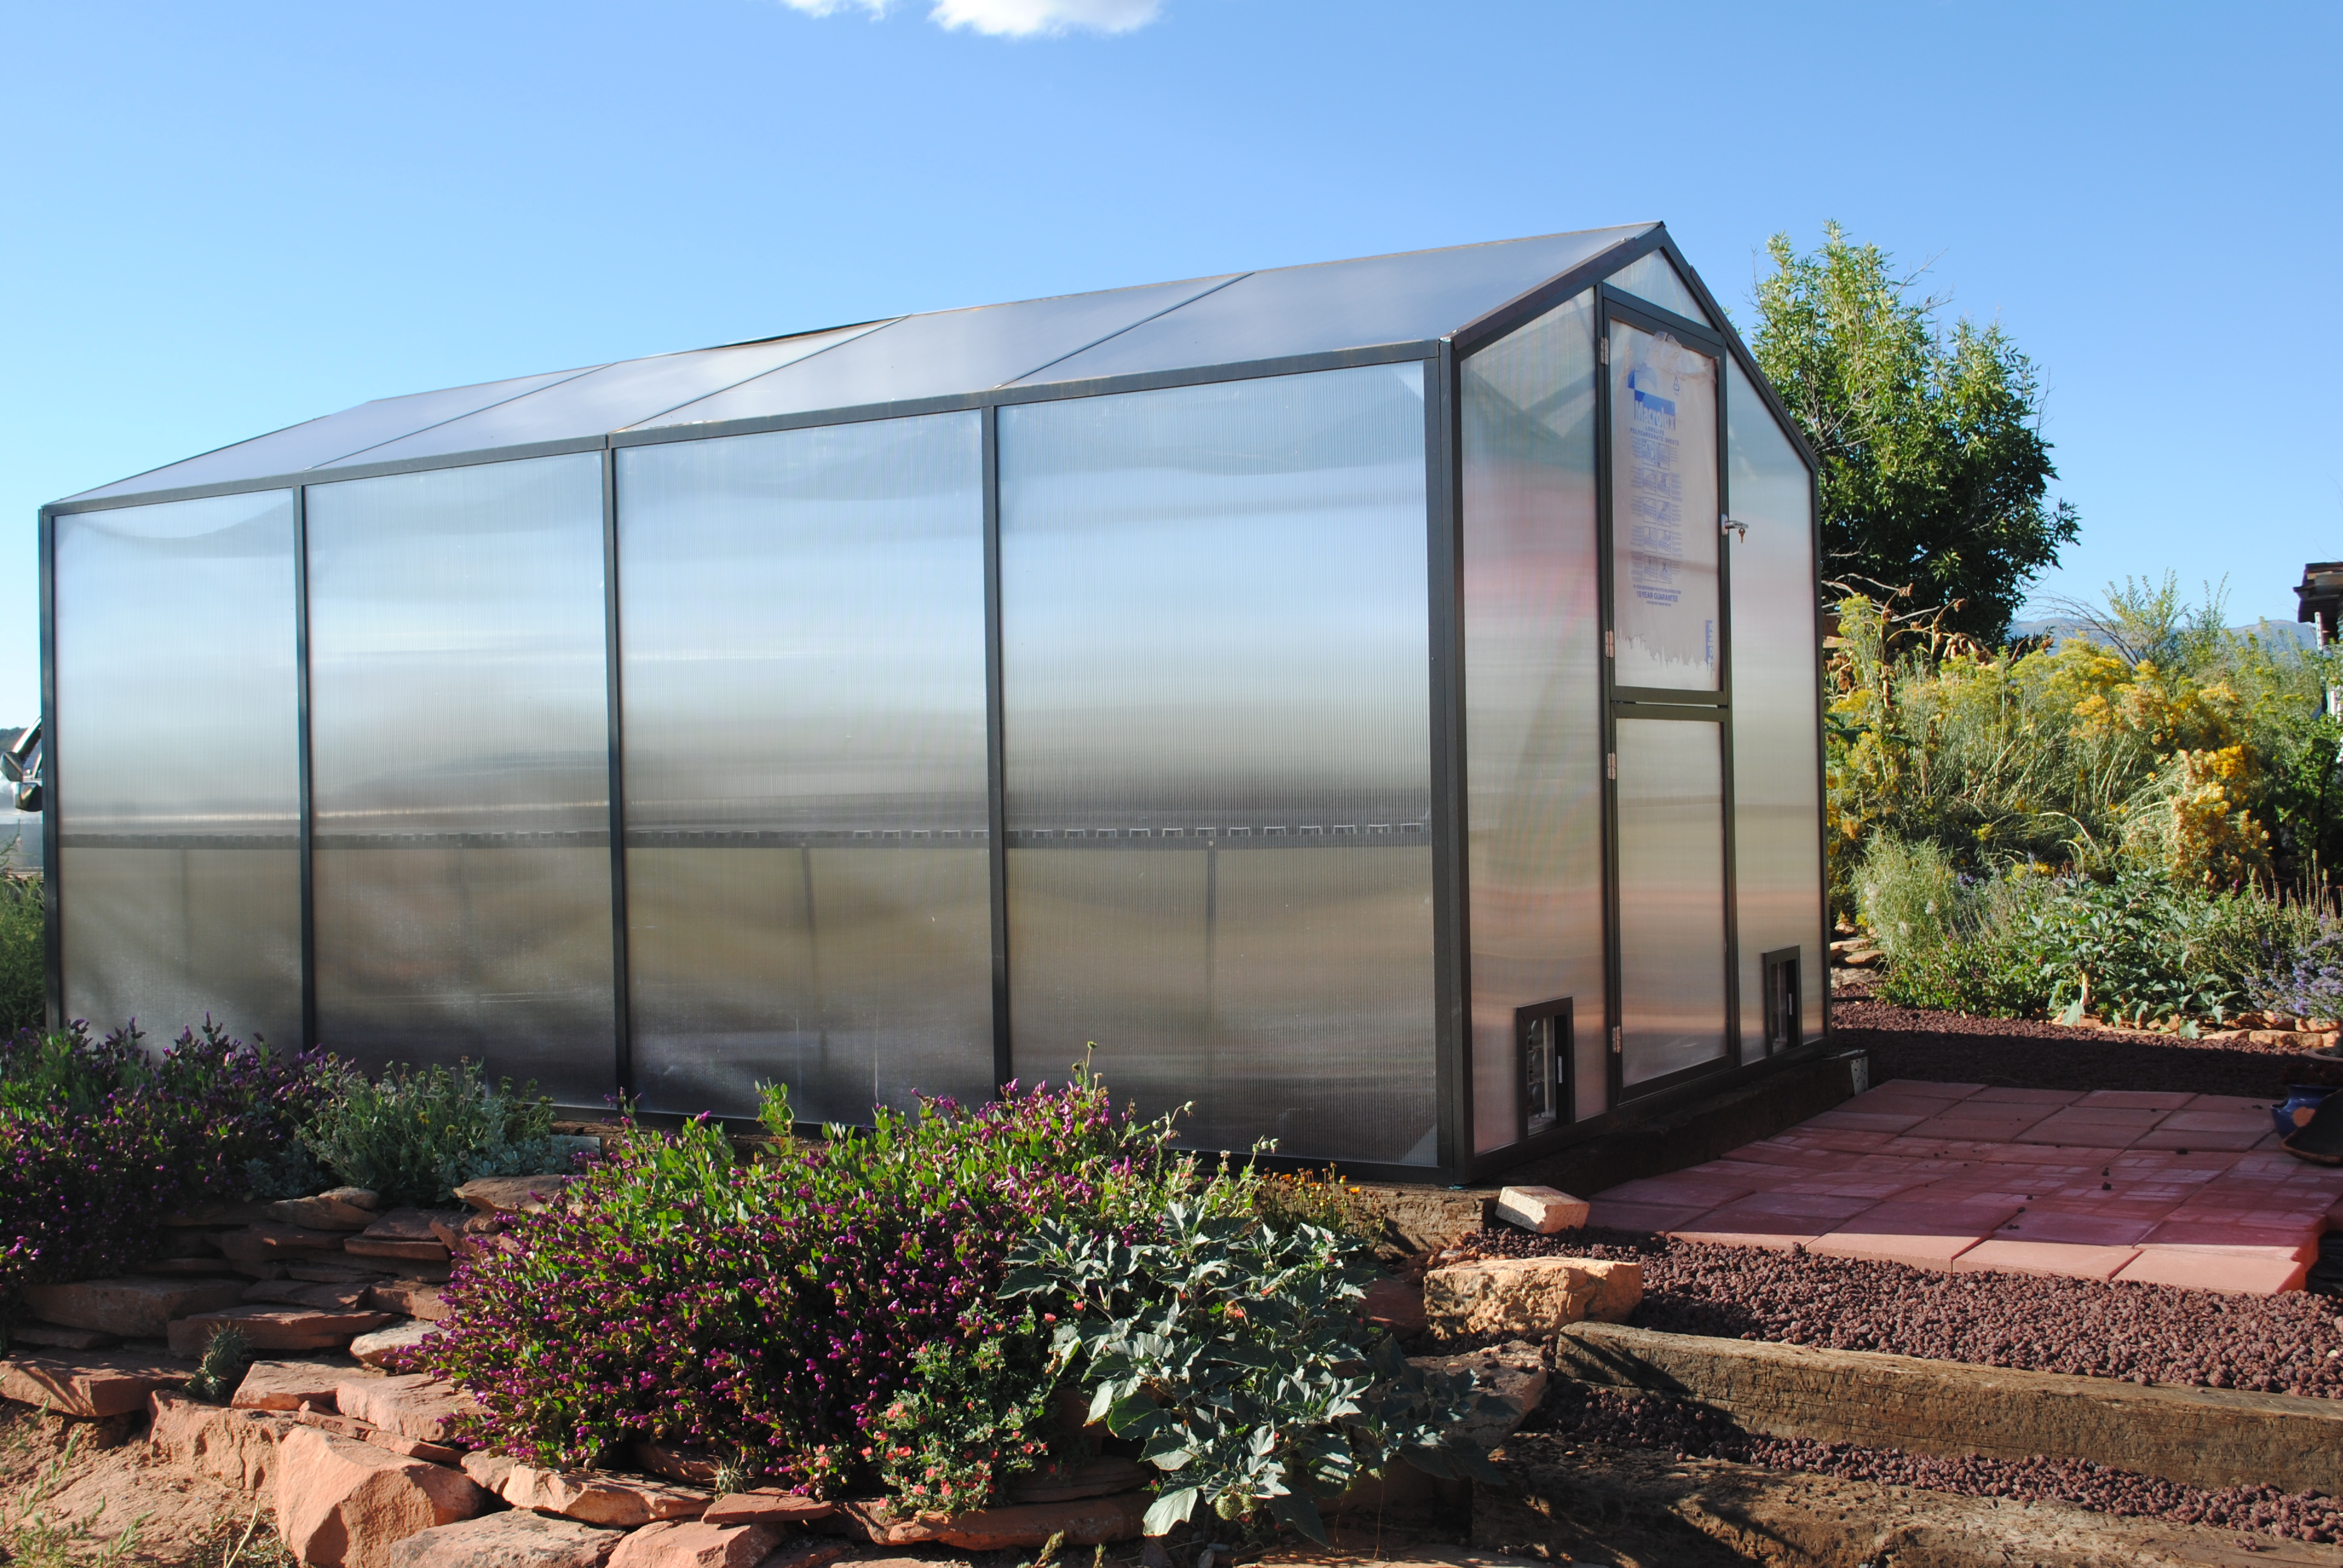 How To Build A Greenhouse Diy Green Houses